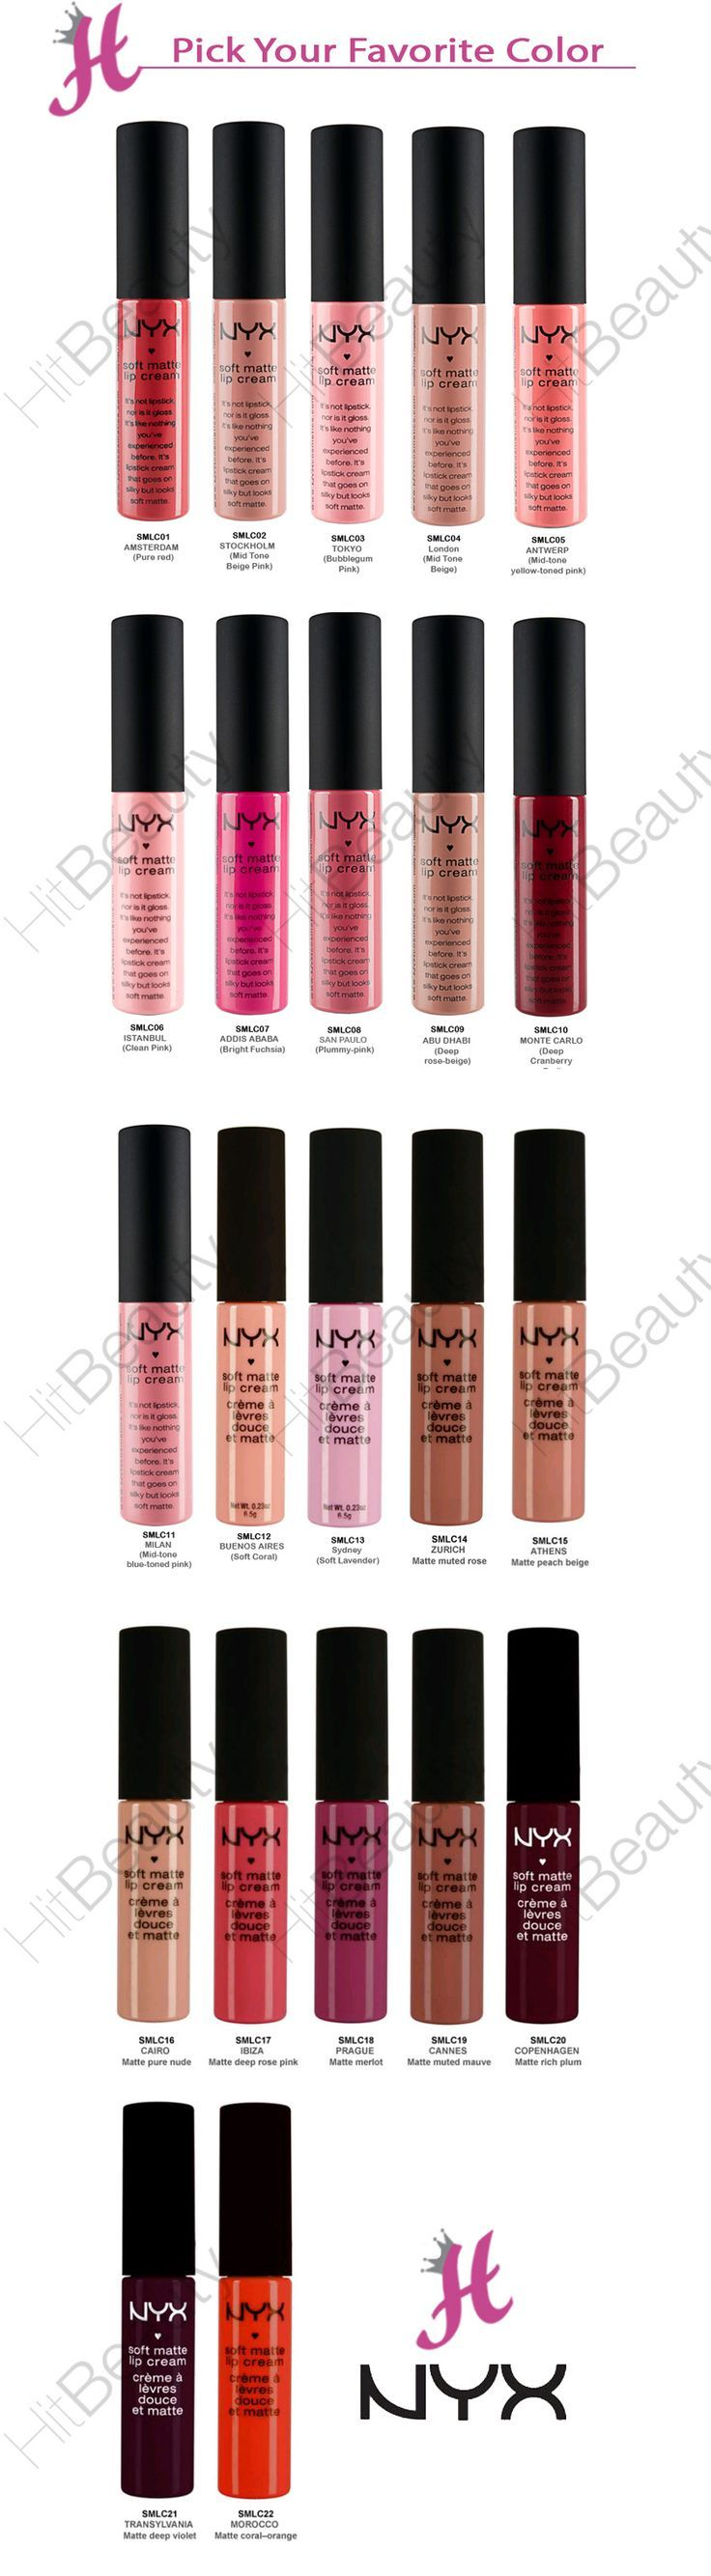 NYX Soft Matte Lip Cream - color names and numbers